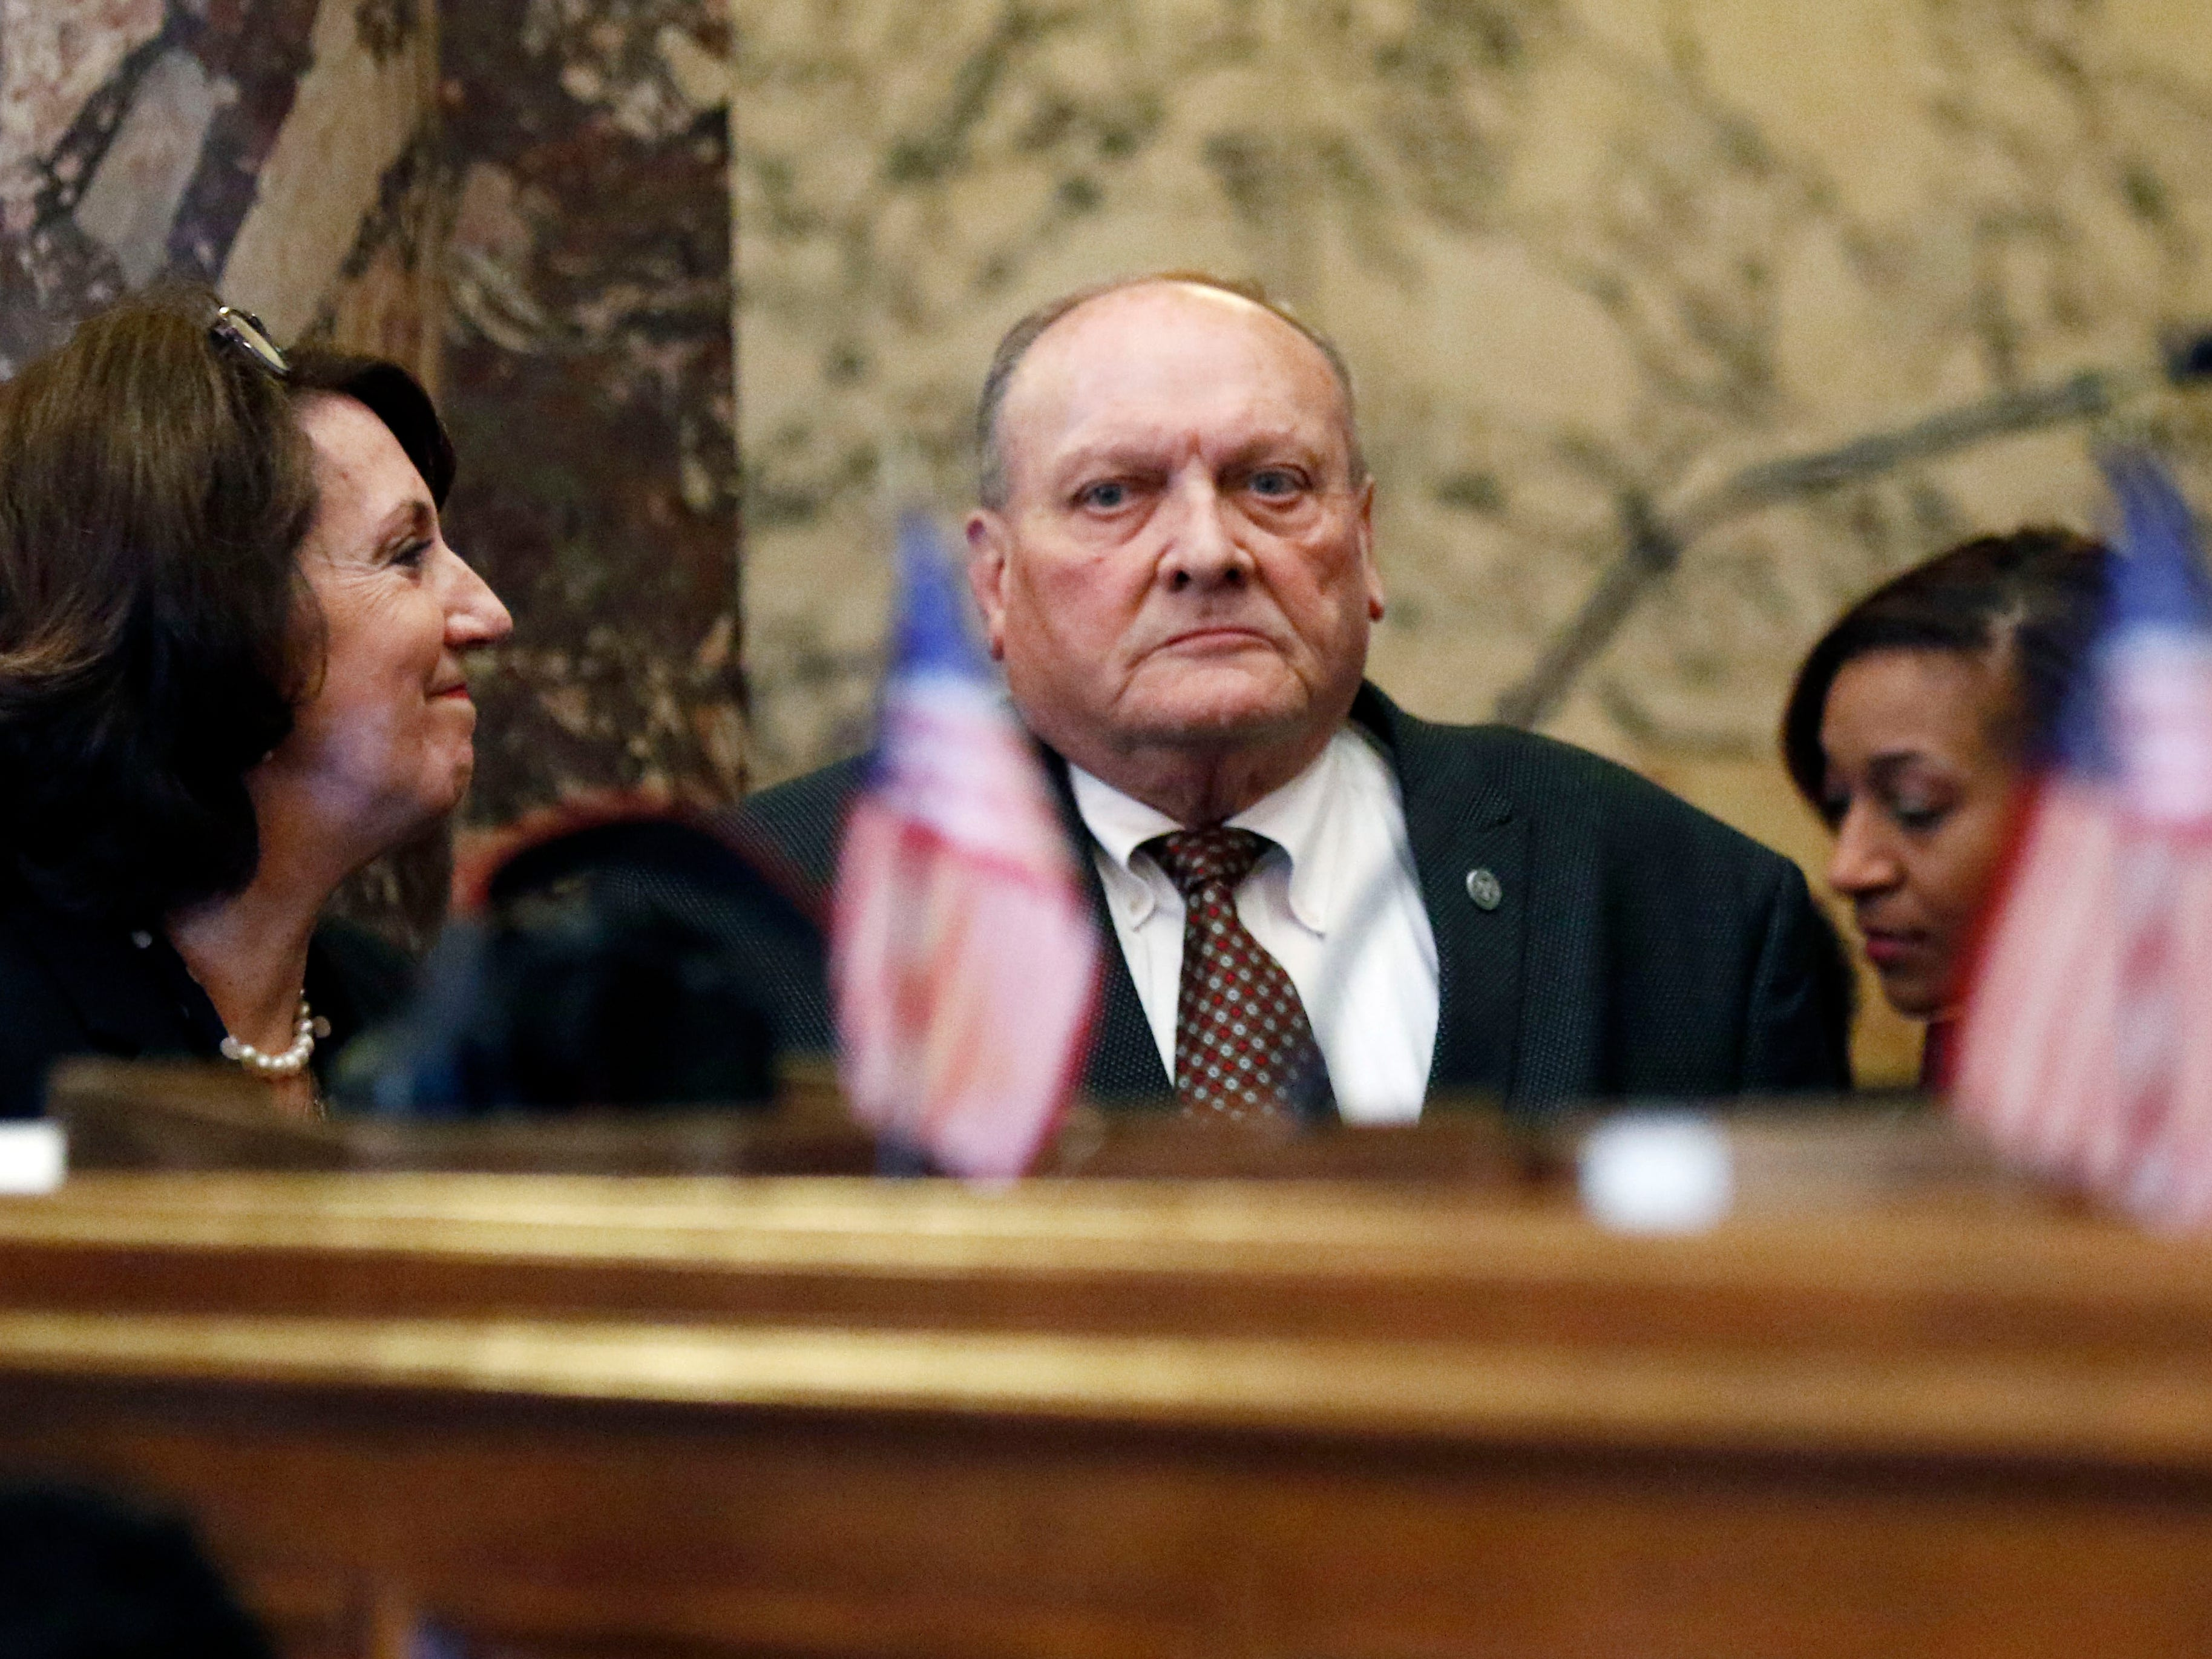 Republican Terry Burton of Newton, president pro tempore of the Mississippi Senate, listens as officials and senate staff applaud him after telling the body he is resigning his leadership role, weeks after being charged with second-offense drunken driving, moments after the beginning of the 2019 legislative session at the Capitol in Jackson, Miss., Tuesday, Jan. 8, 2019. Burton says he will remain in the 52-member Senate this year but will not seek another four-year term in office.